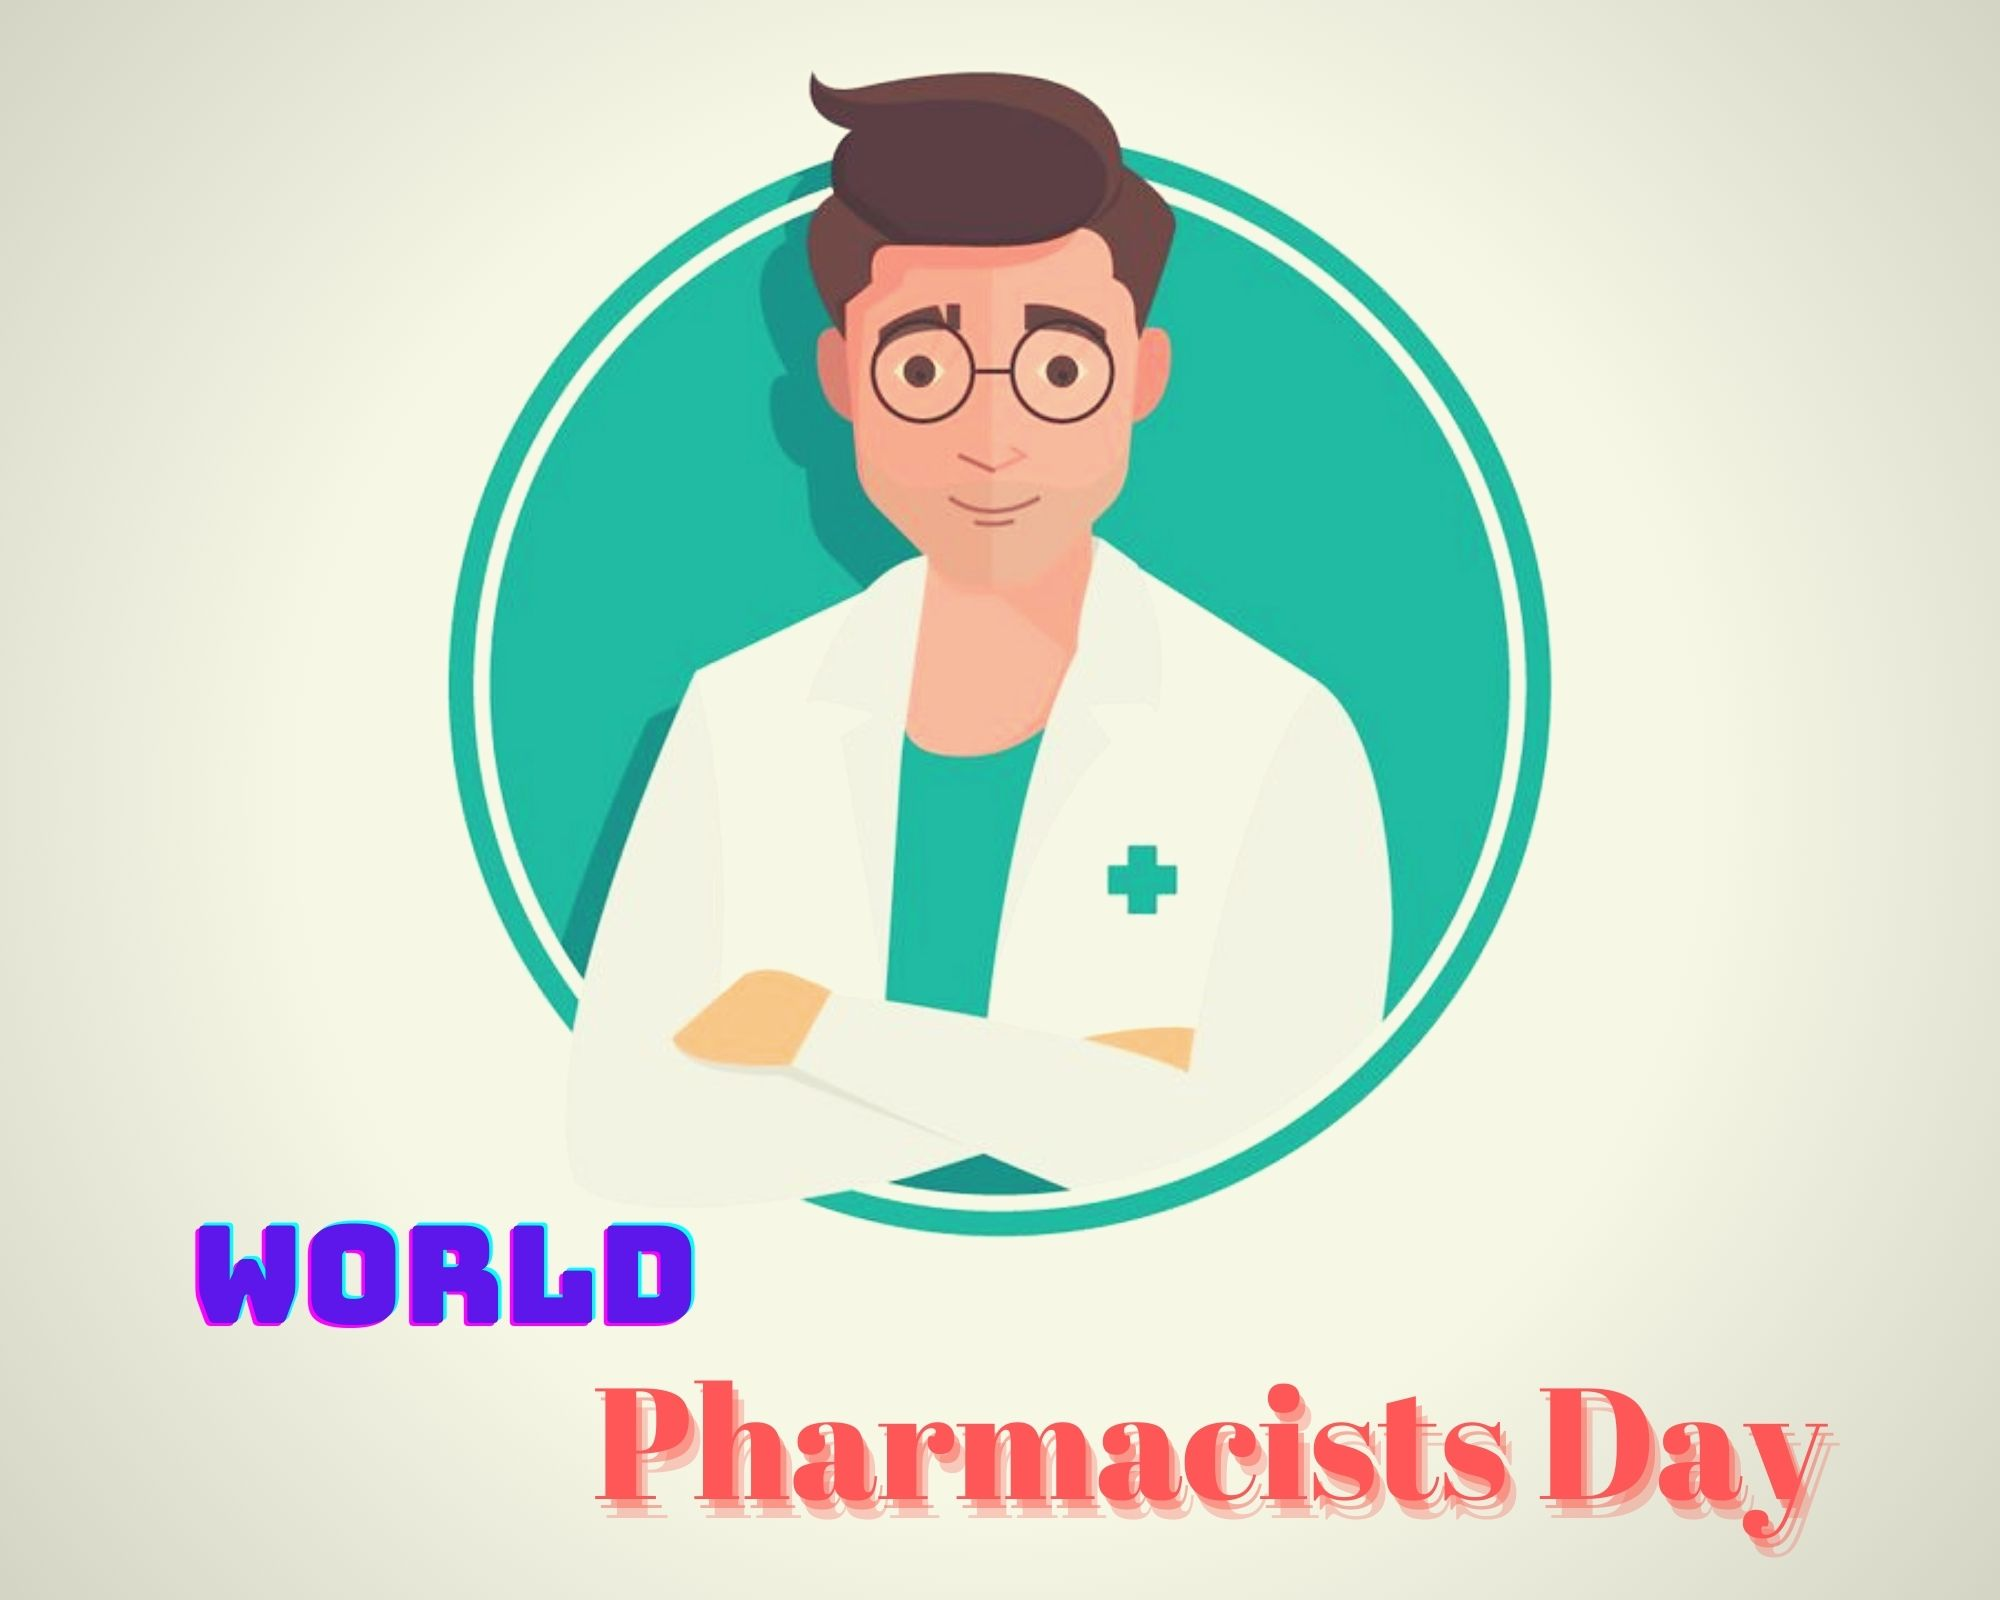 Pharmacists day